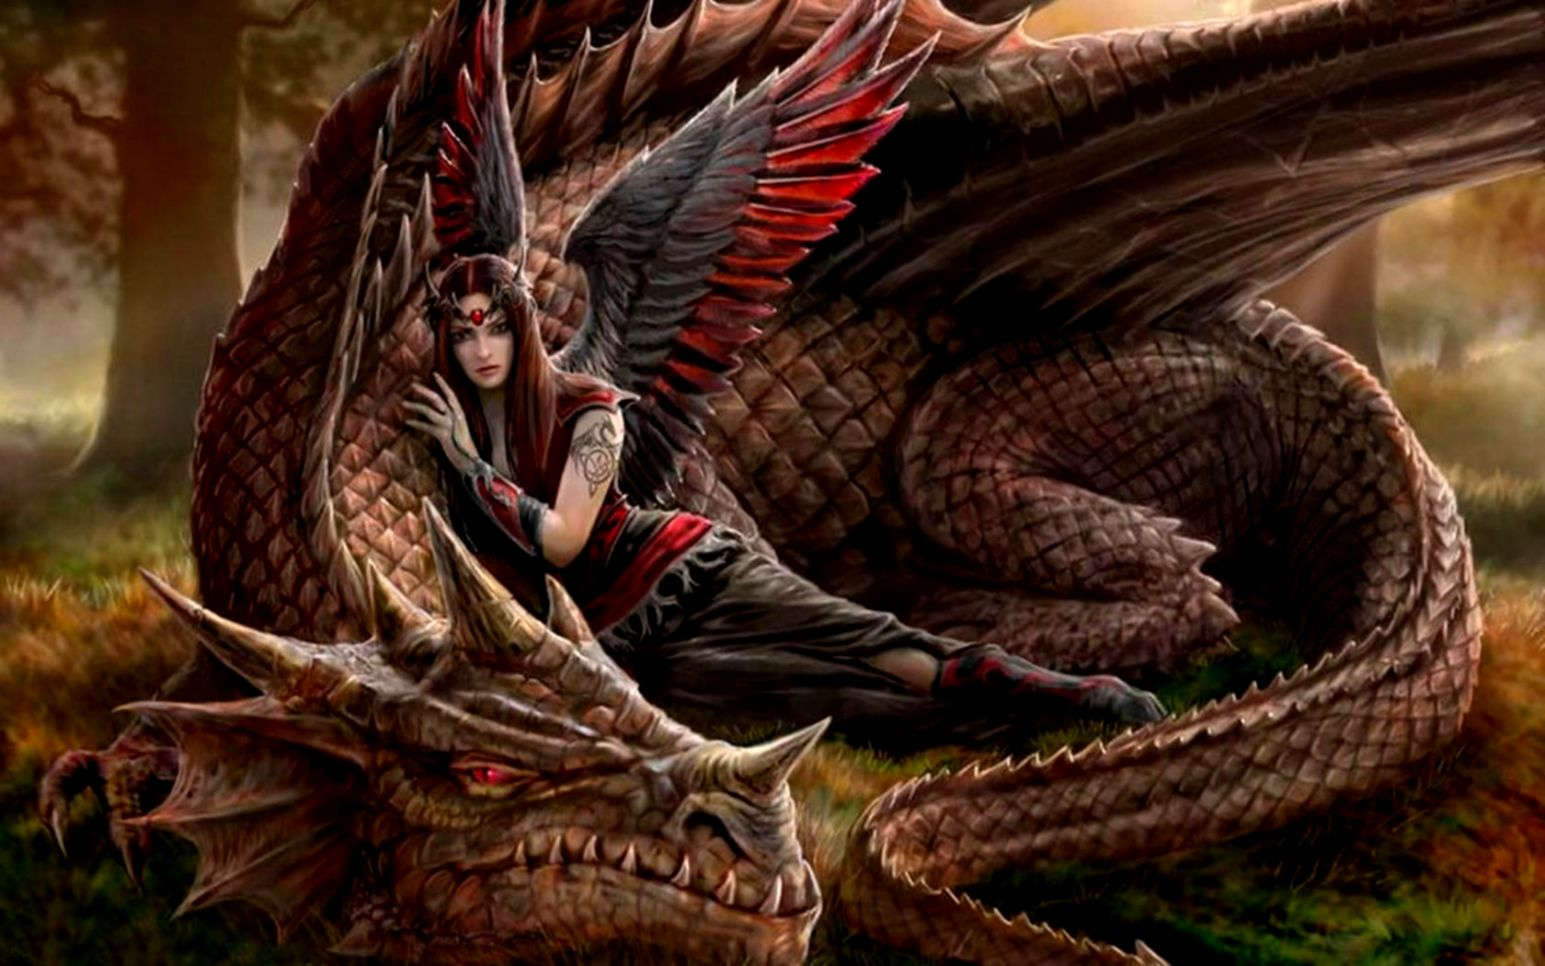 Download 74 Koleksi Wallpaper 3d Dragon Gambar HD Terbaru